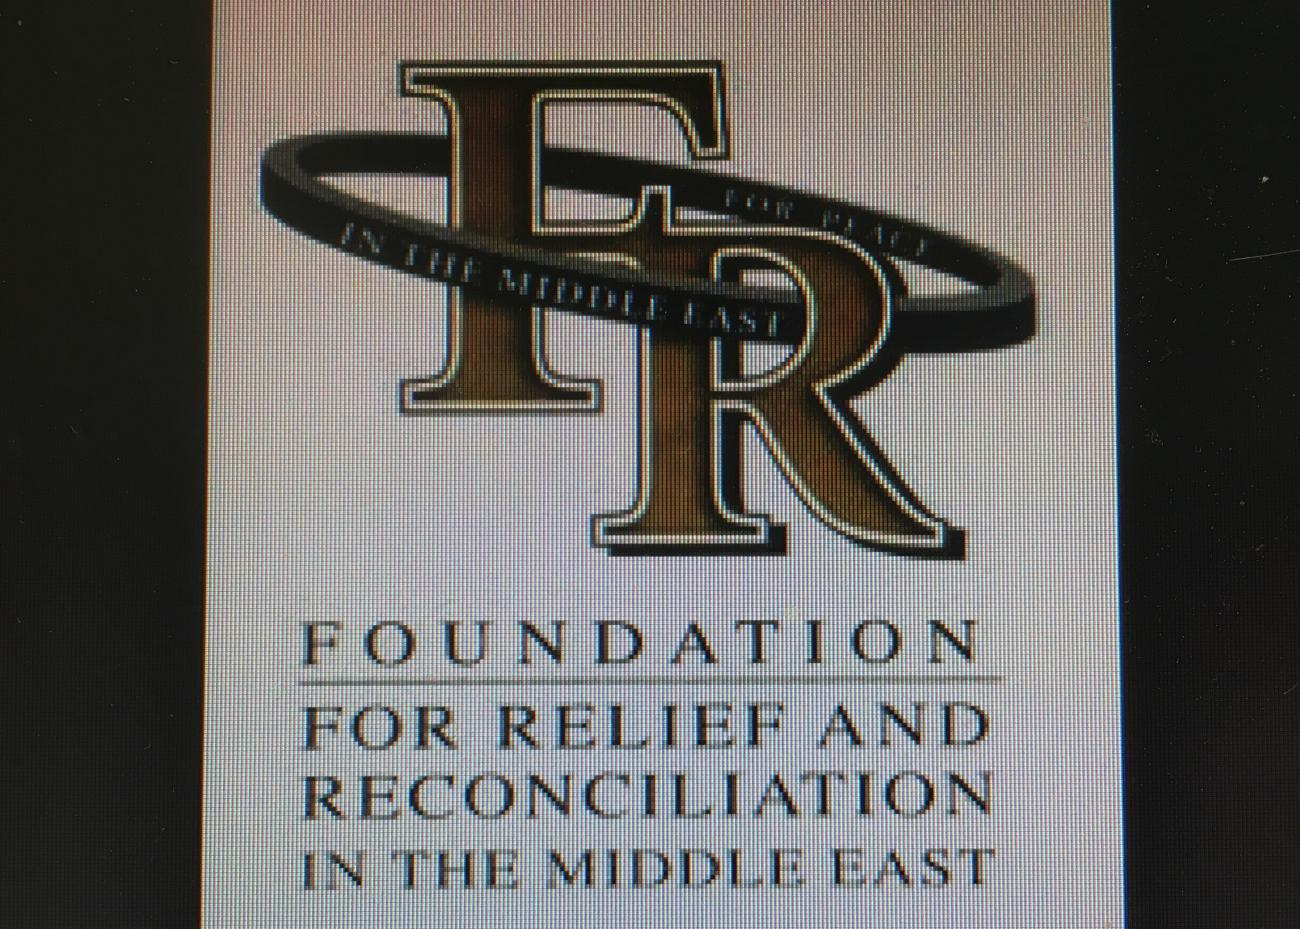 10.30am - The Foundation for Relief and Reconciliation in the Middle East Image